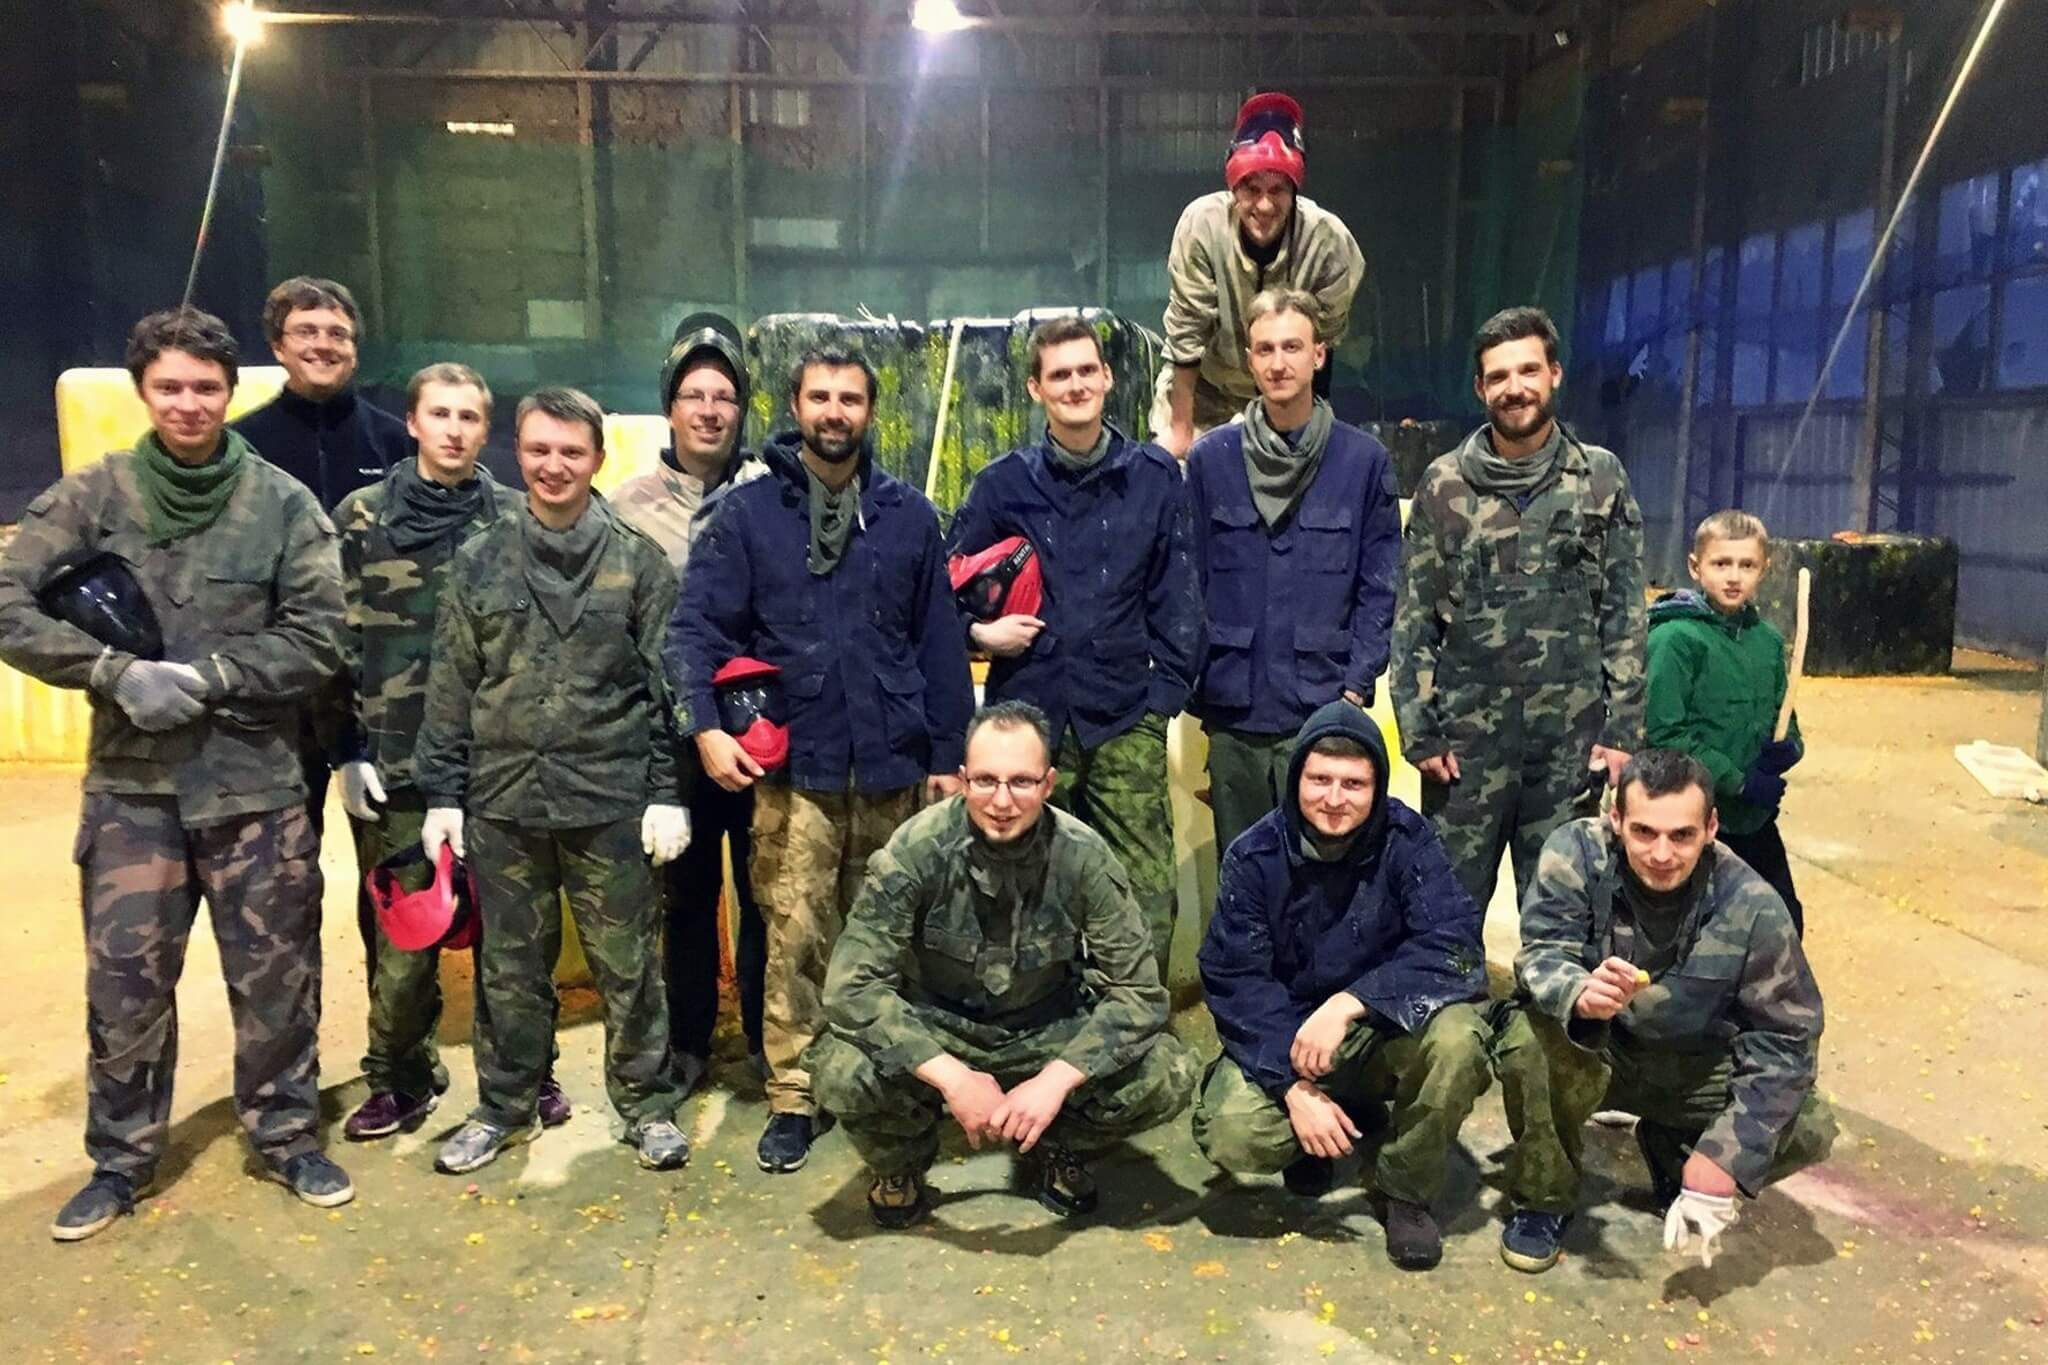 E-Bros team playing paintball